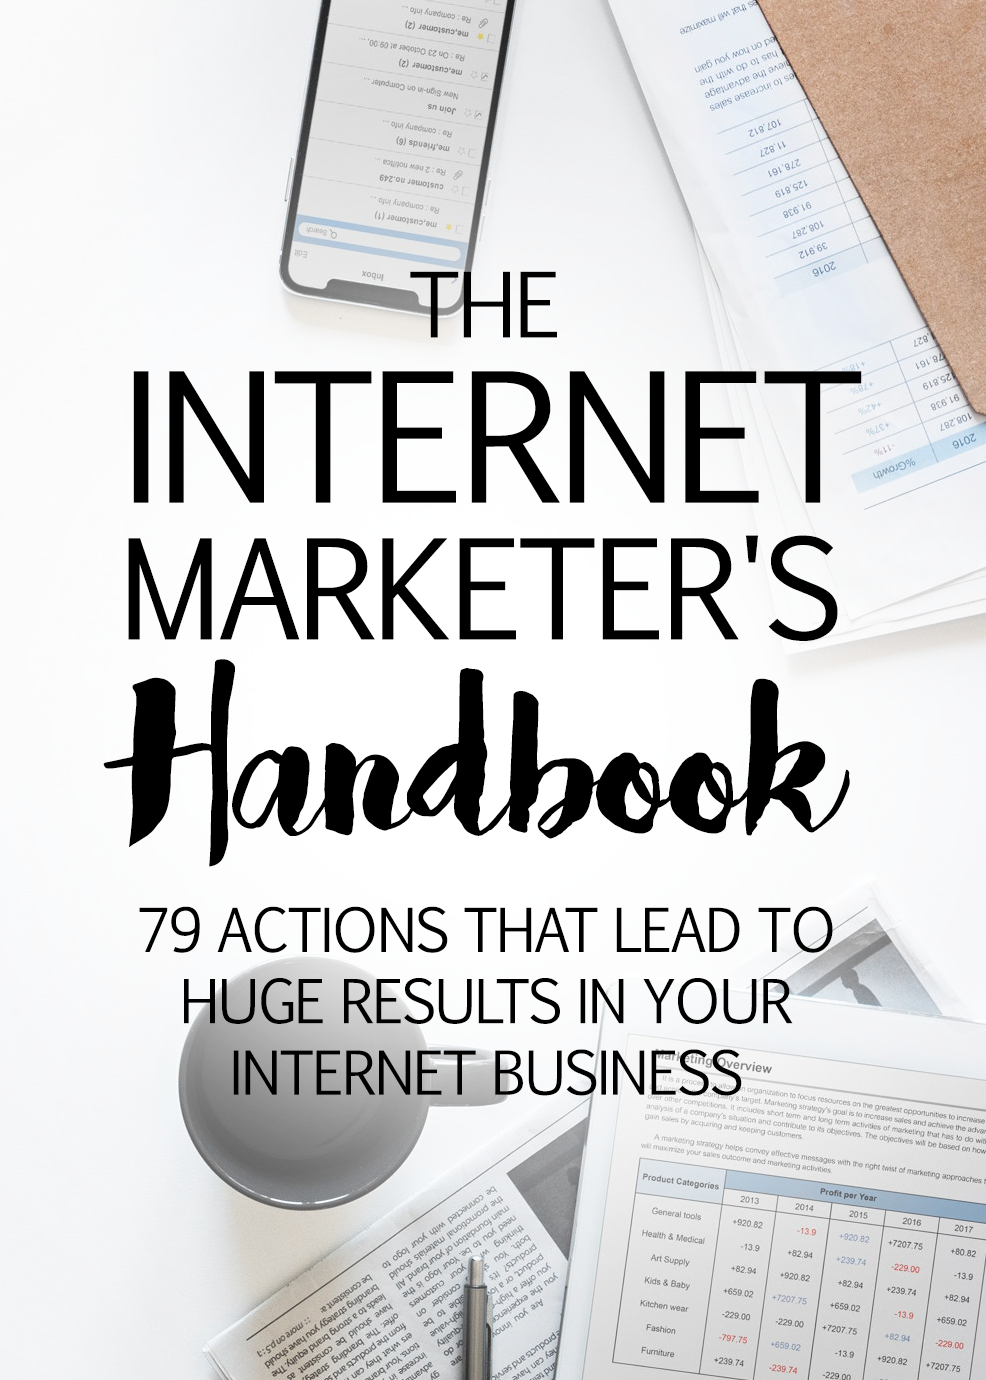 The Internet Marketer's Handbook (79 Actions That Lead To Huge Results In Your Internet Business) Ebook's Ebook Image